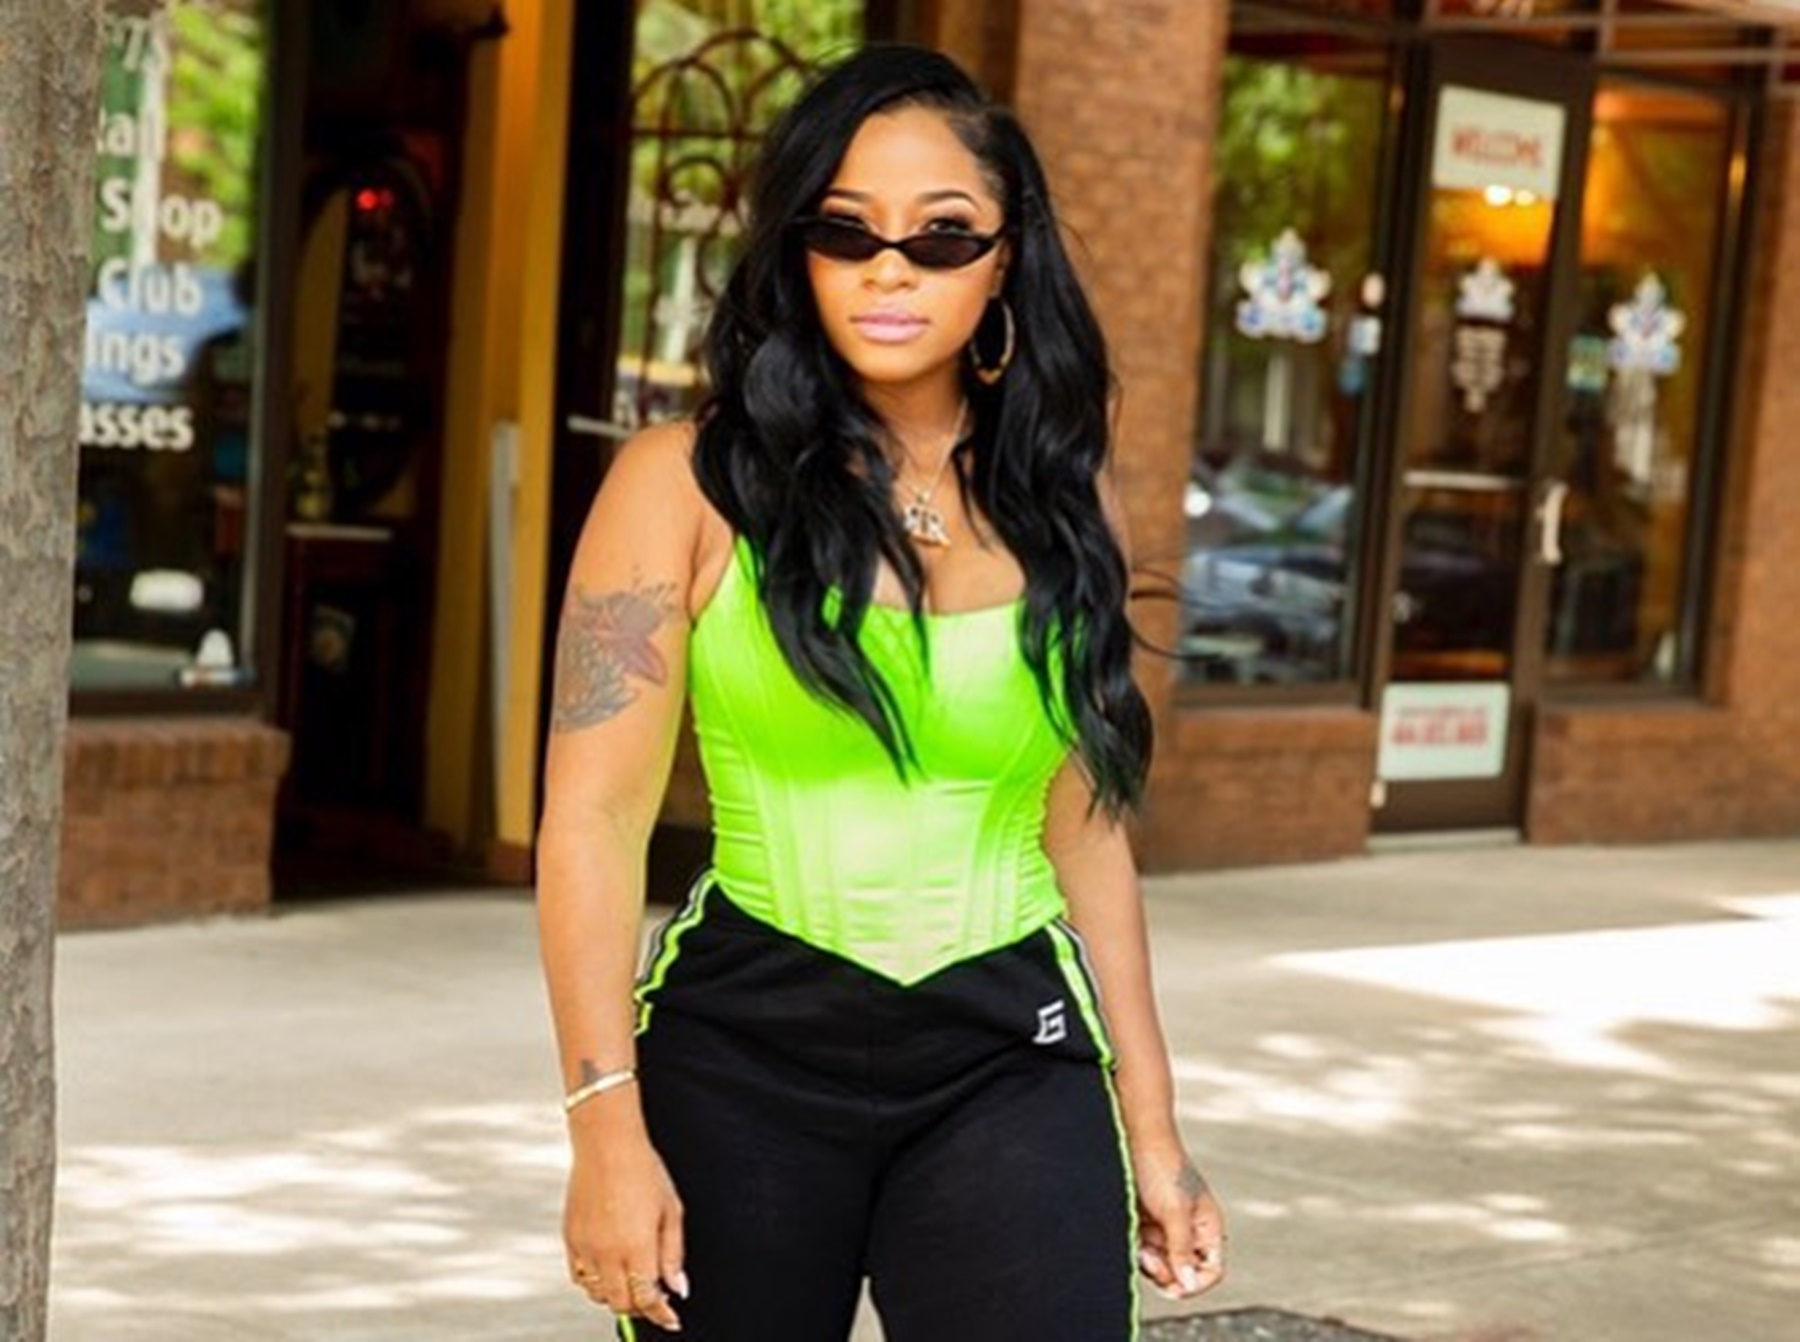 toya-wright-reveals-her-fans-the-event-shell-be-hosting-for-4th-of-july